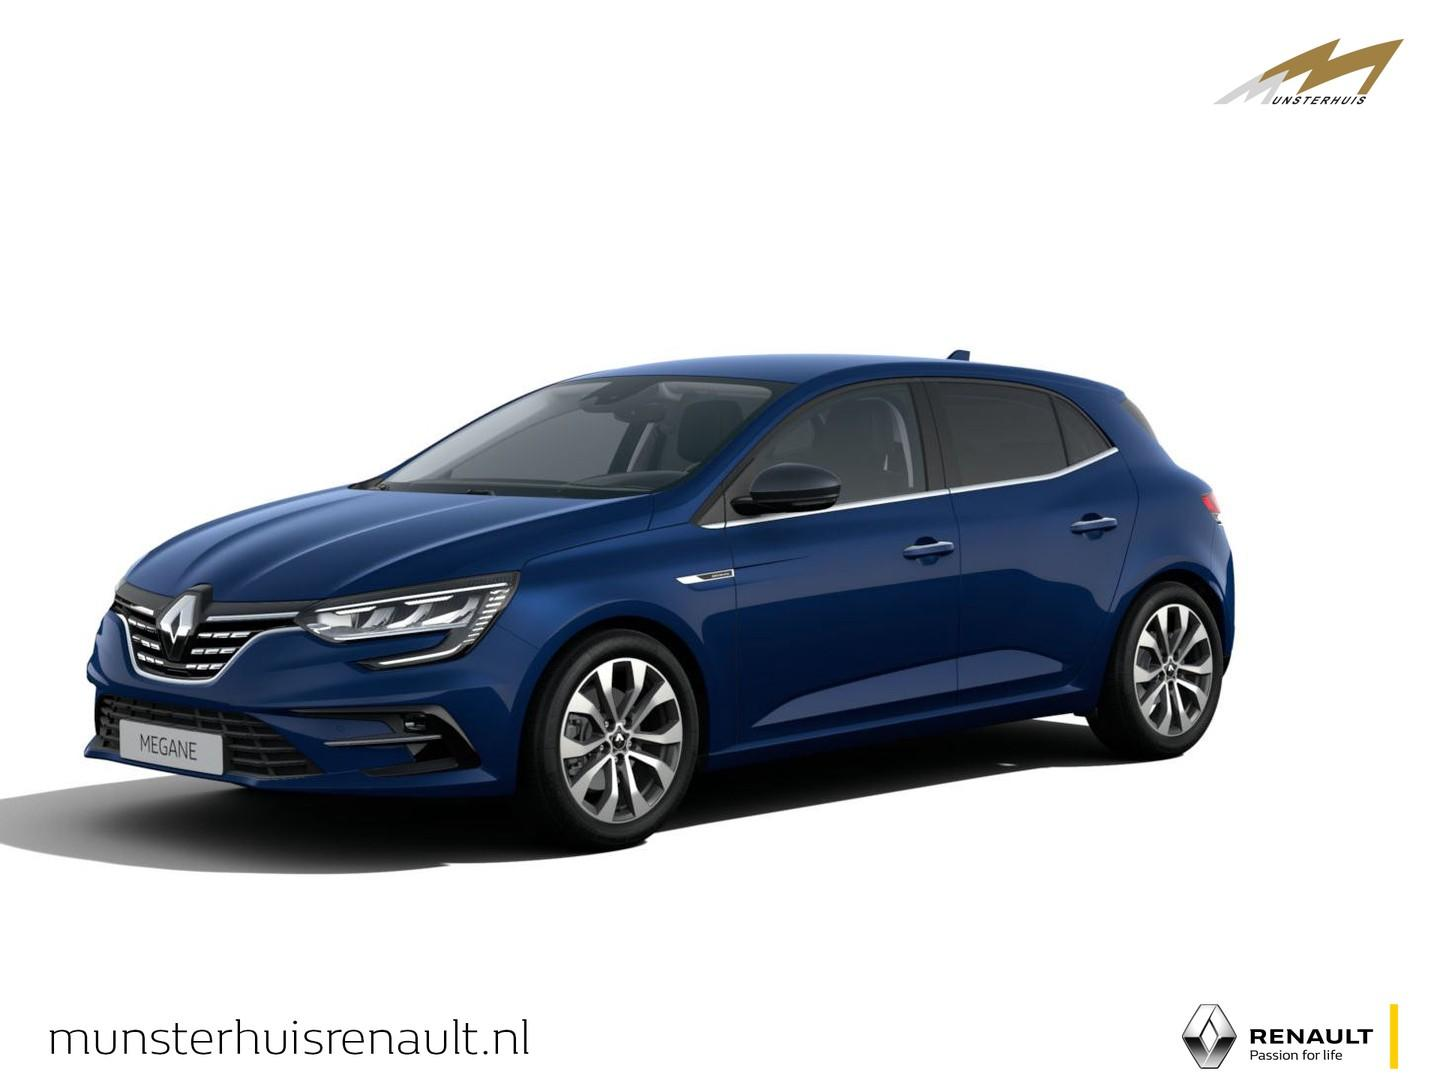 Renault Mégane Tce 140 gpf business edition one - nieuw model